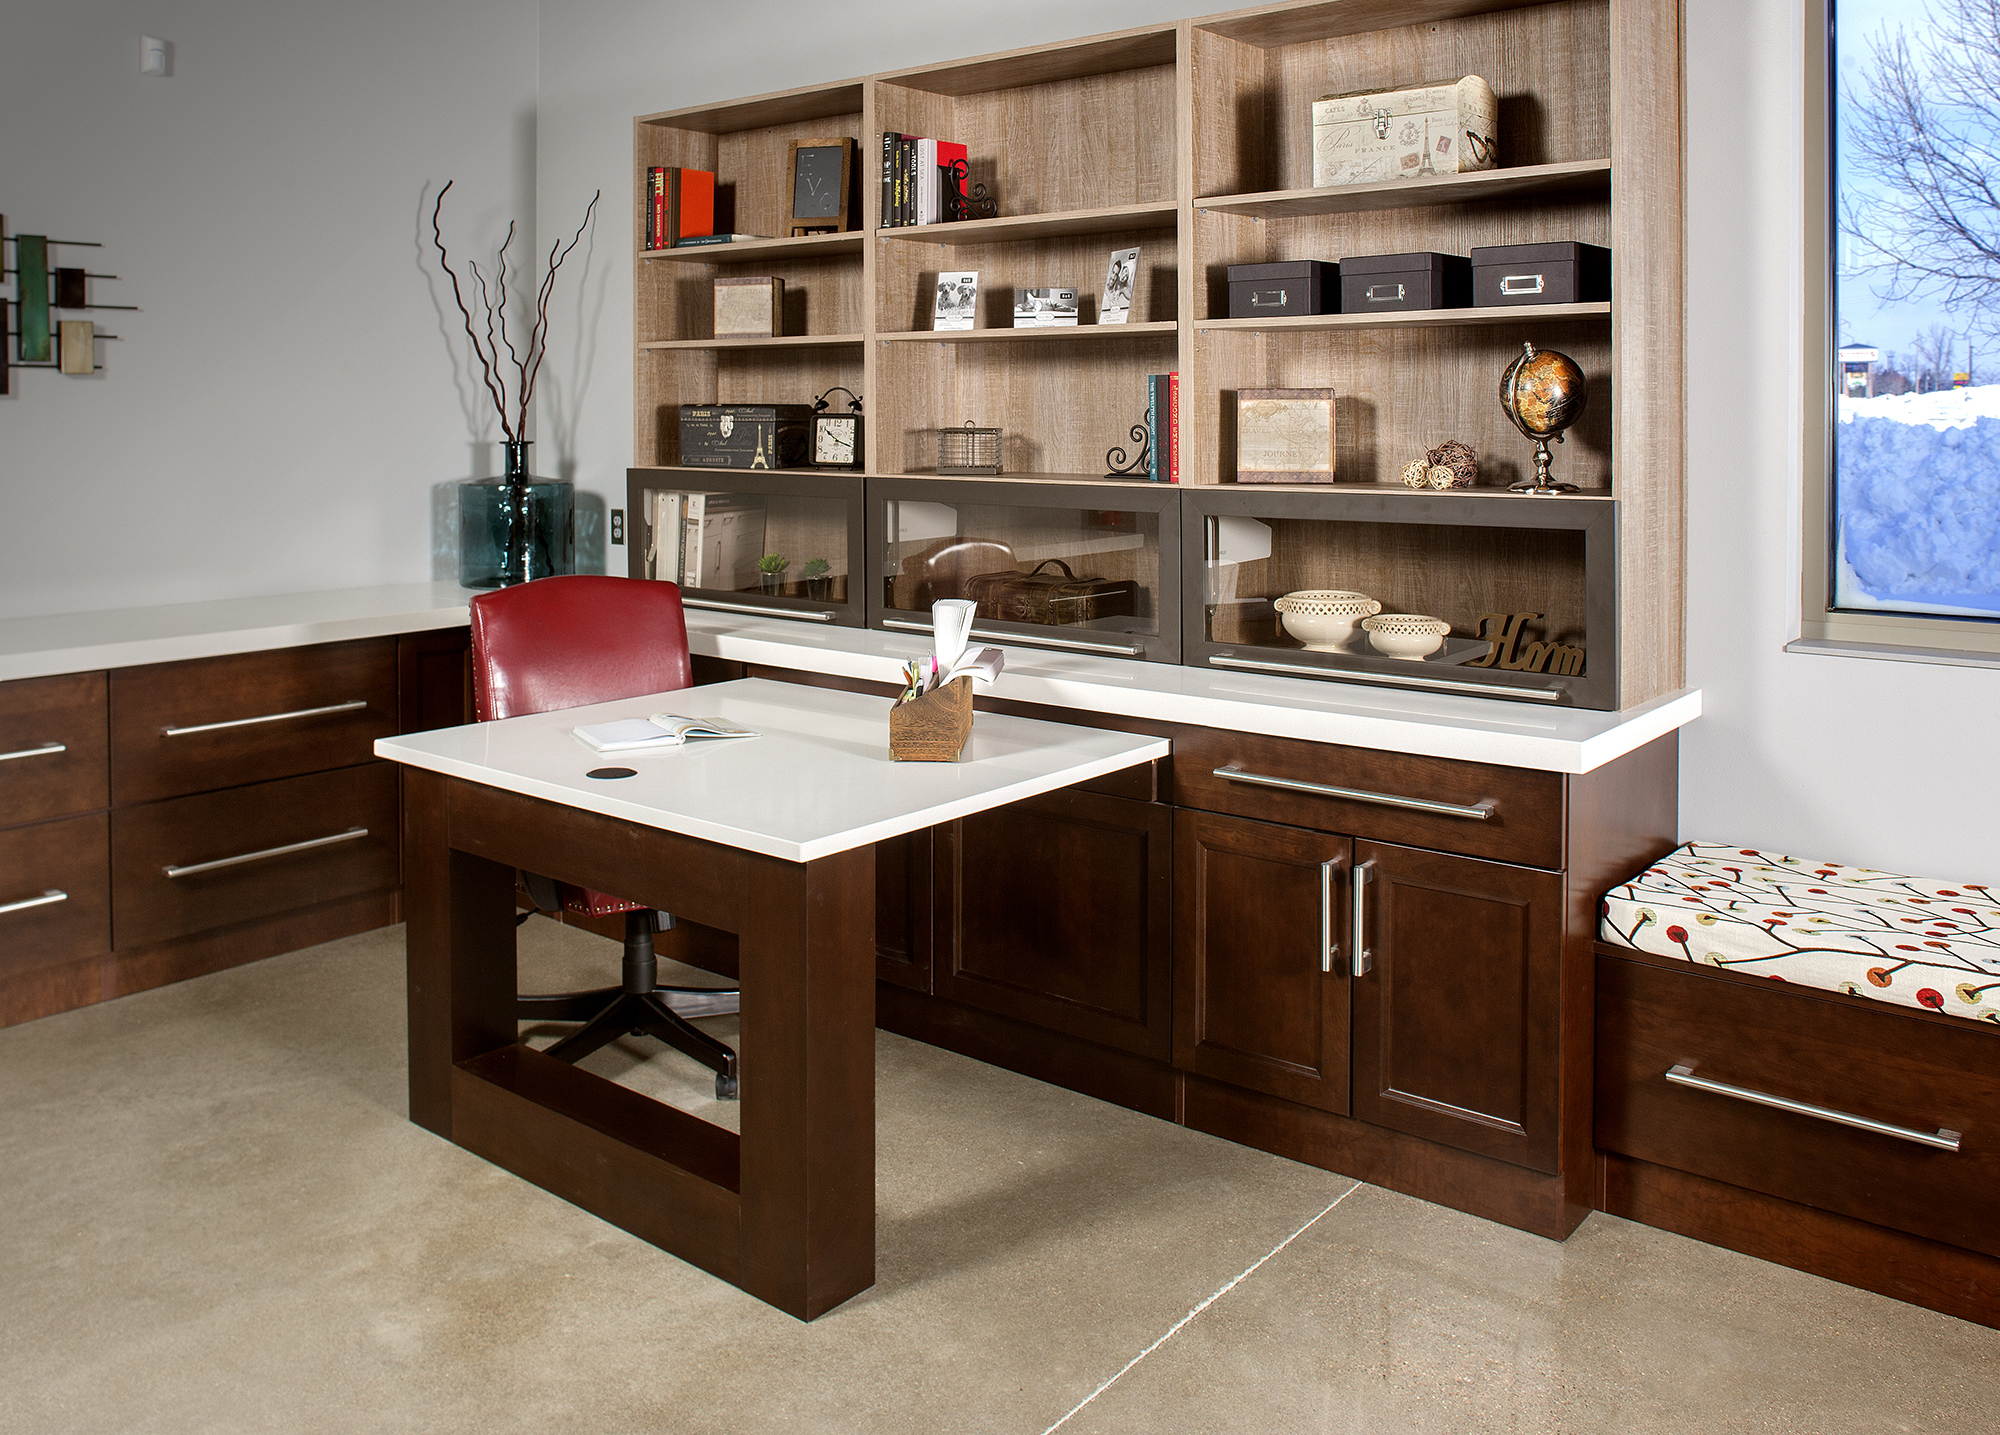 Stained office cabinets in Coffee by ShowplaceEVO